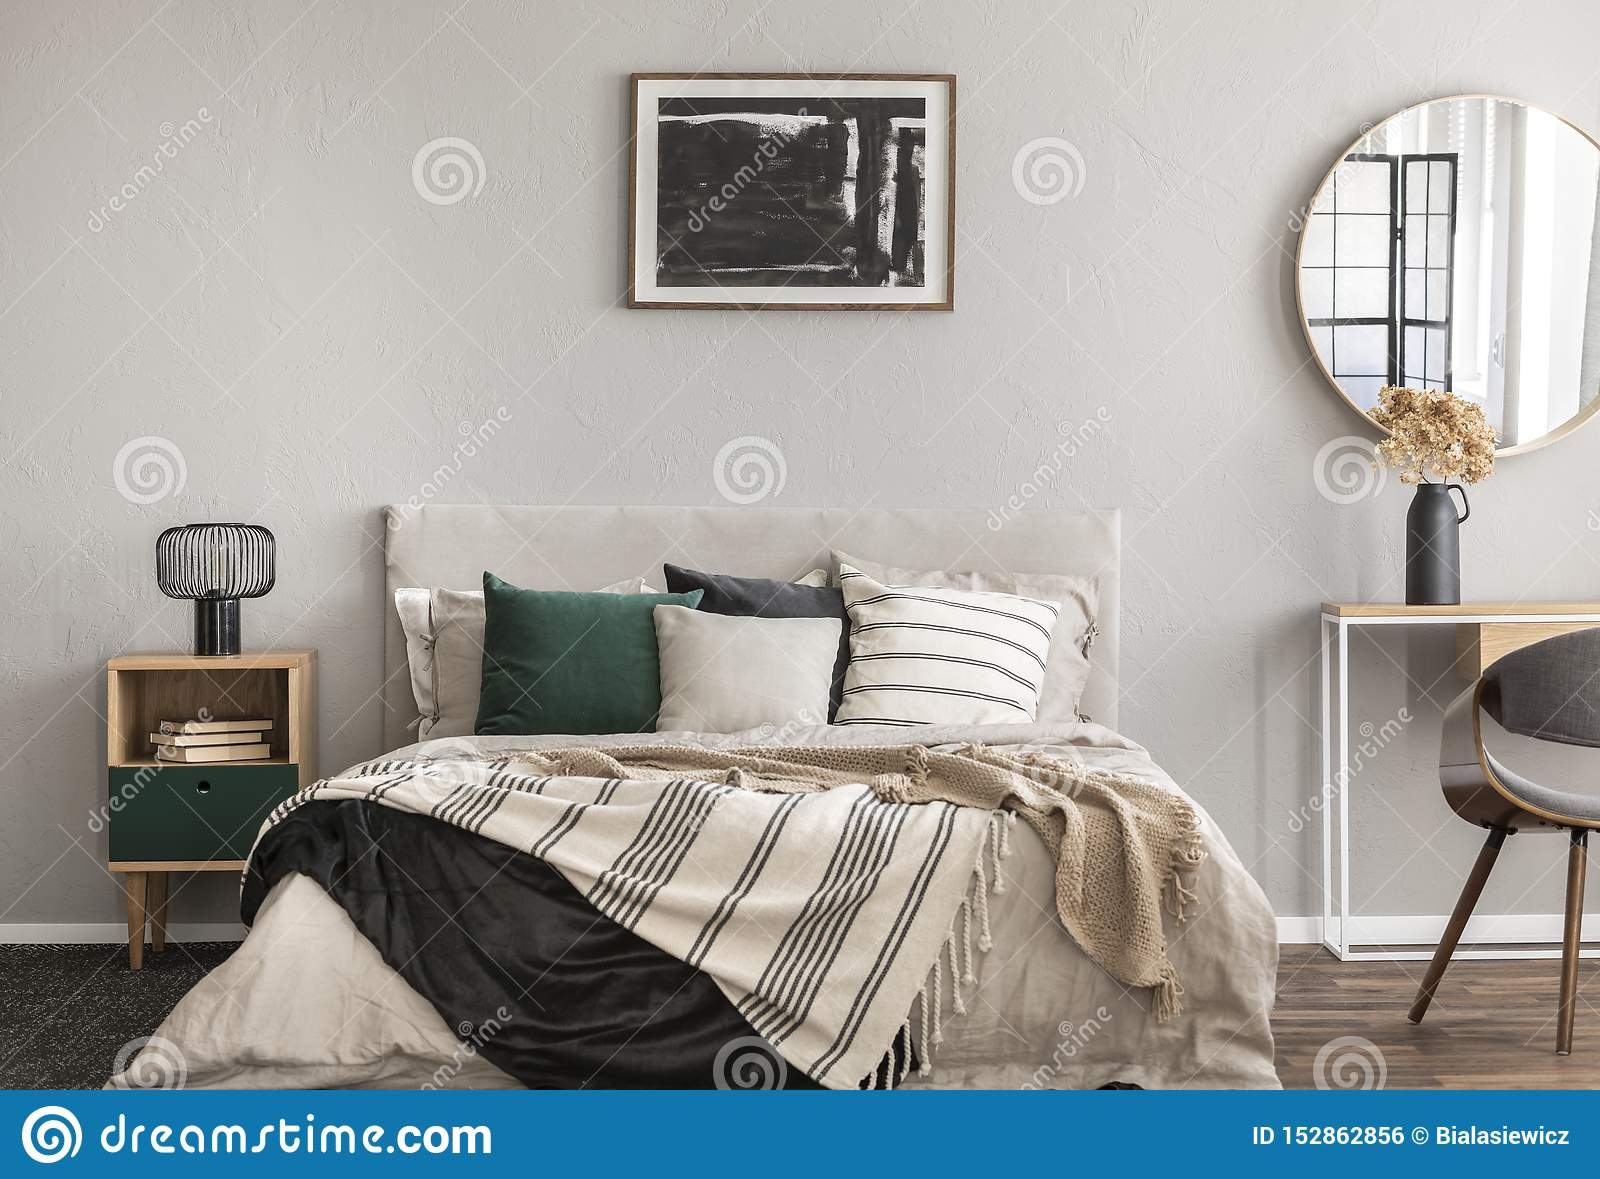 6 406 Black Wall Bedroom Photos Free Royalty Free Stock Photos From Dreamstime